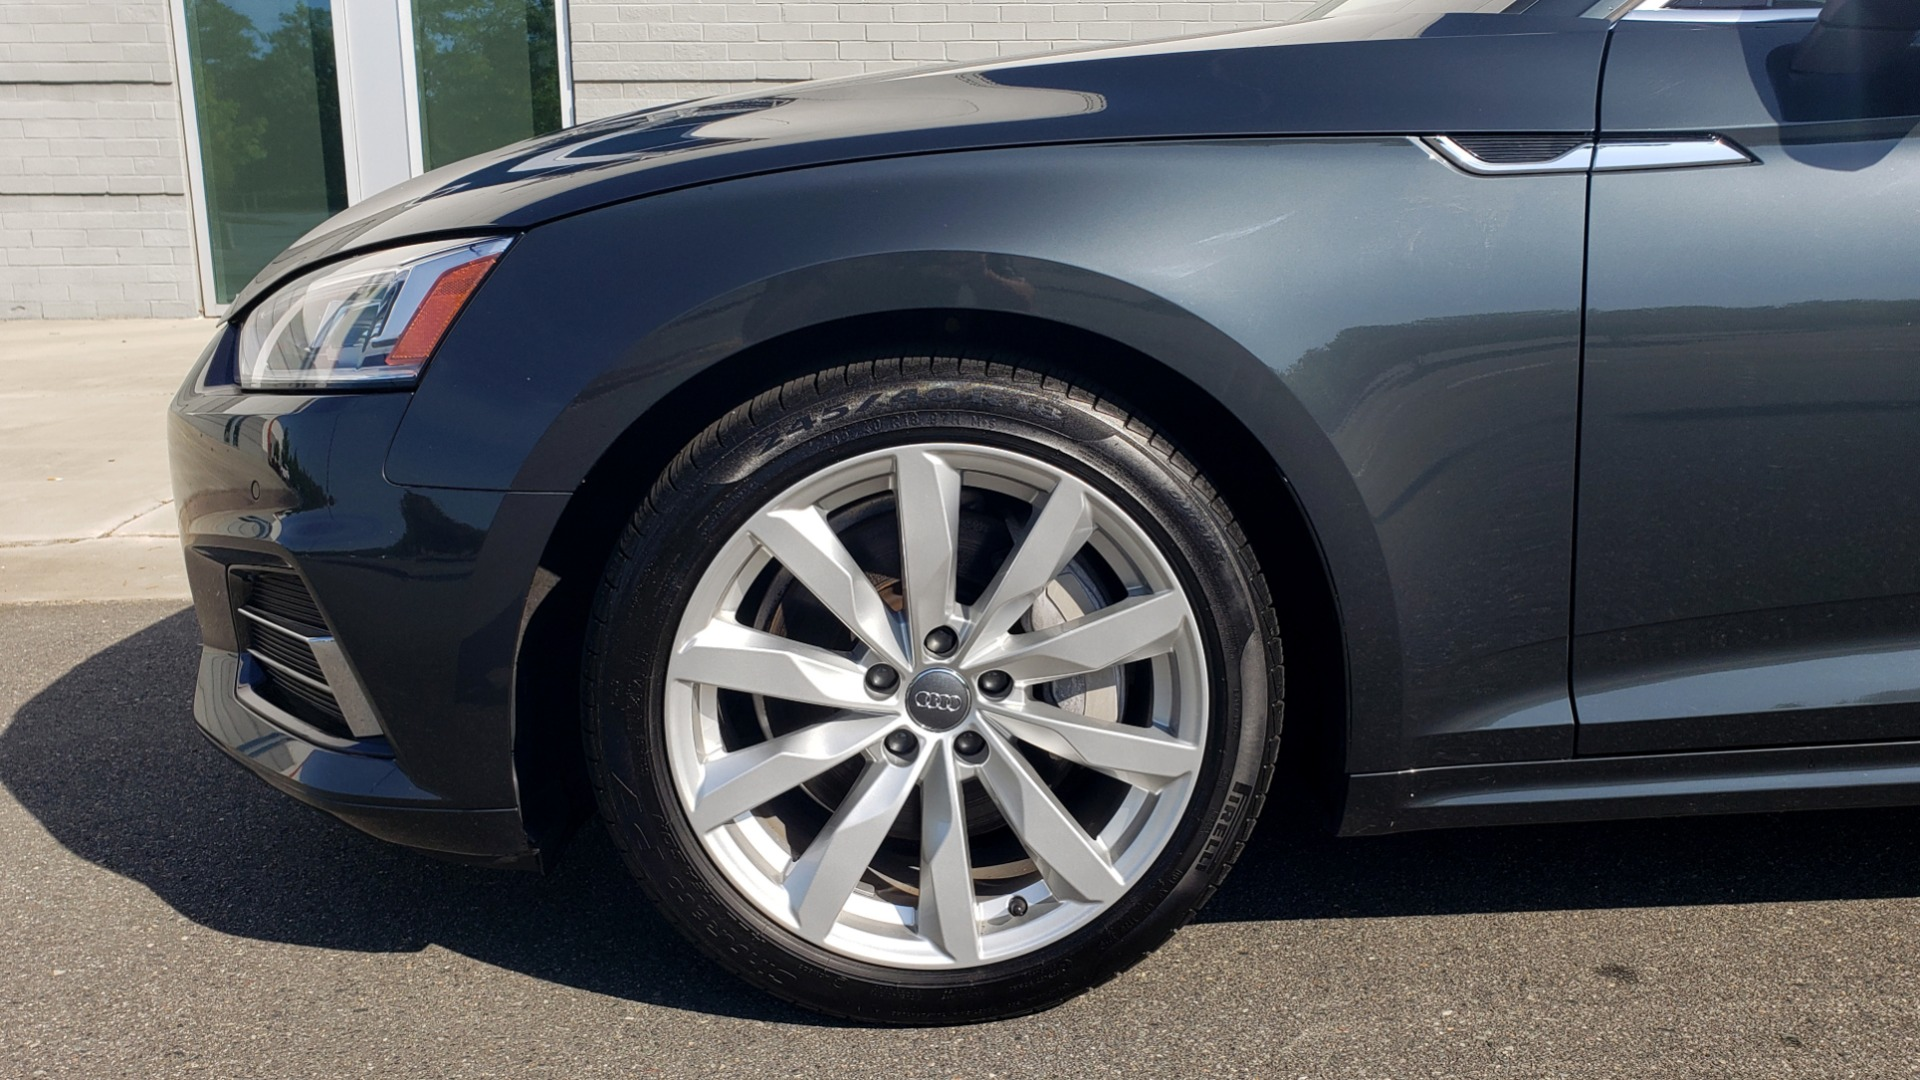 Used 2018 Audi A5 SPORTBACK PREMIUM PLUS 2.0T / AWD / NAV / B&O SND / SUNROOF / REARVIEW for sale Sold at Formula Imports in Charlotte NC 28227 8